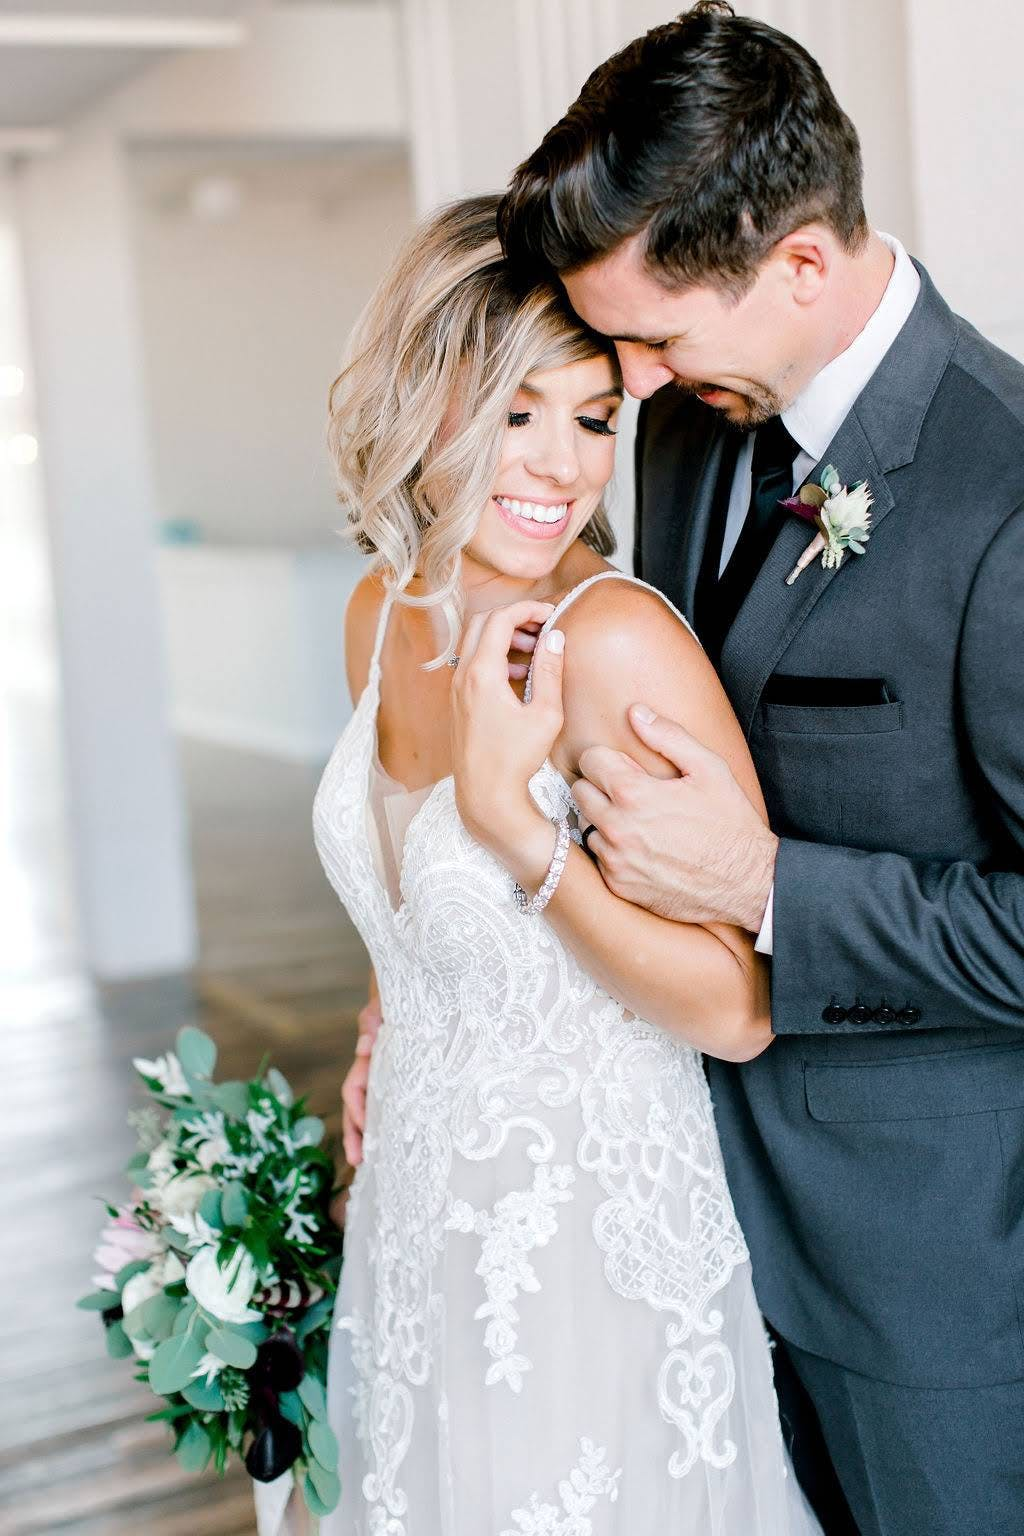 Charcoal gray is this year's most popular wedding color. It is the best wedding suit color for grooms and groomsmen.